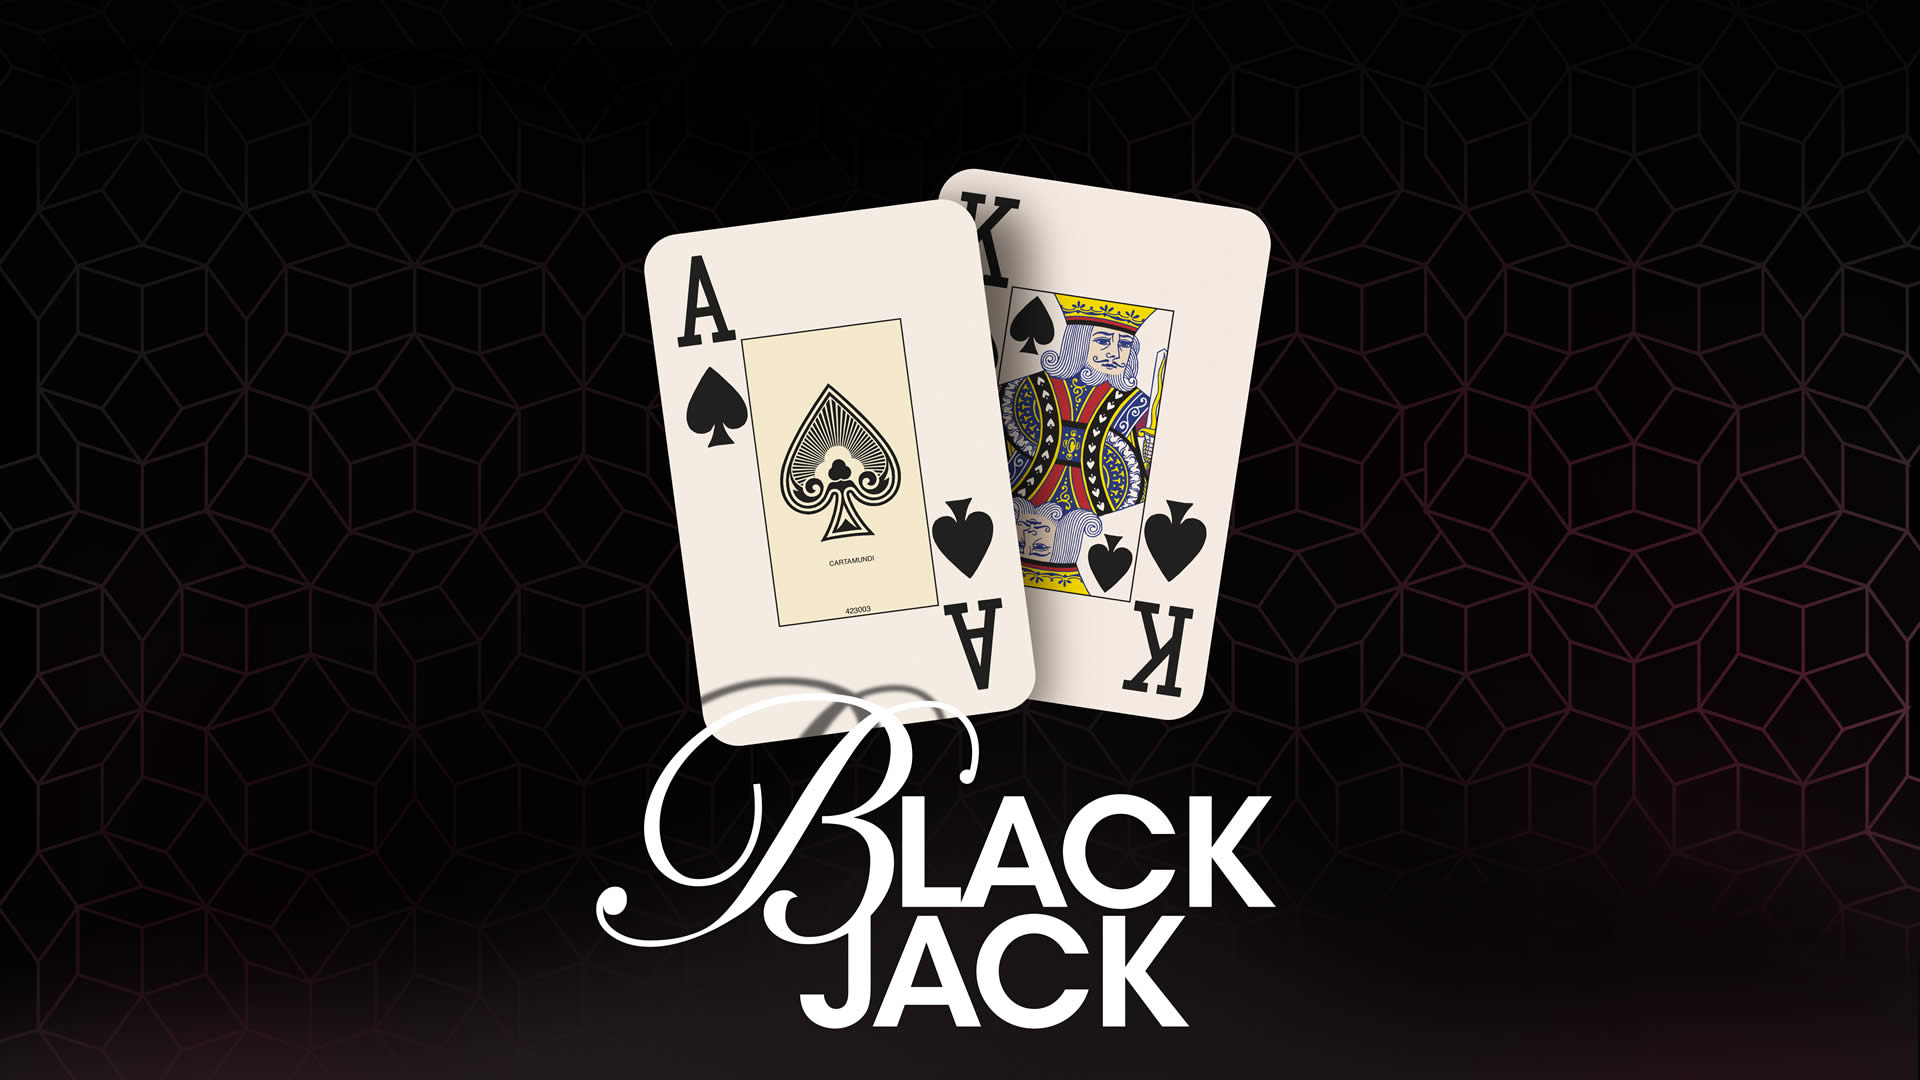 Blackjack payant ou blackjack gratuit ?